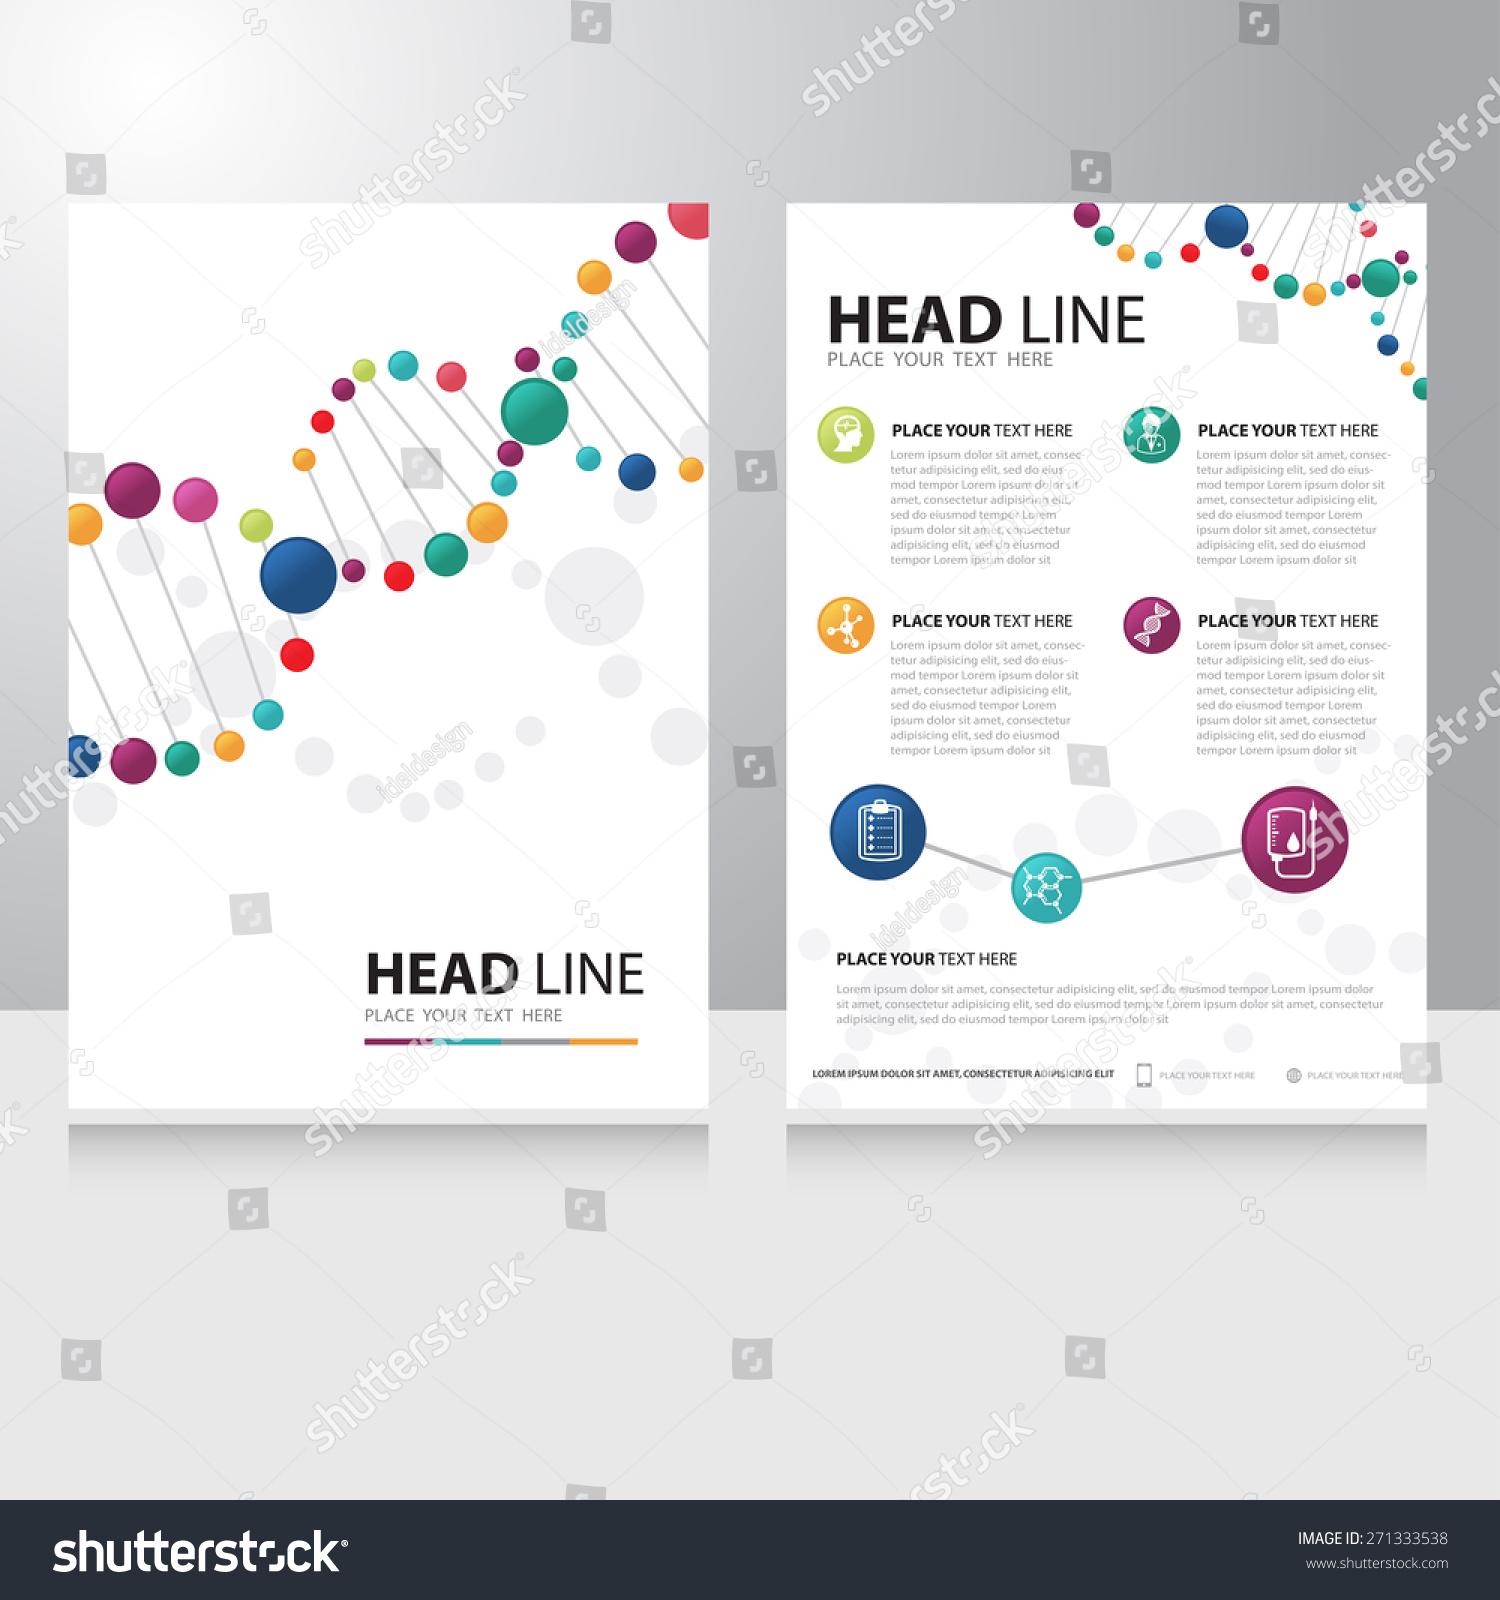 technology brochure template - vector healthcare medical science technology brochure